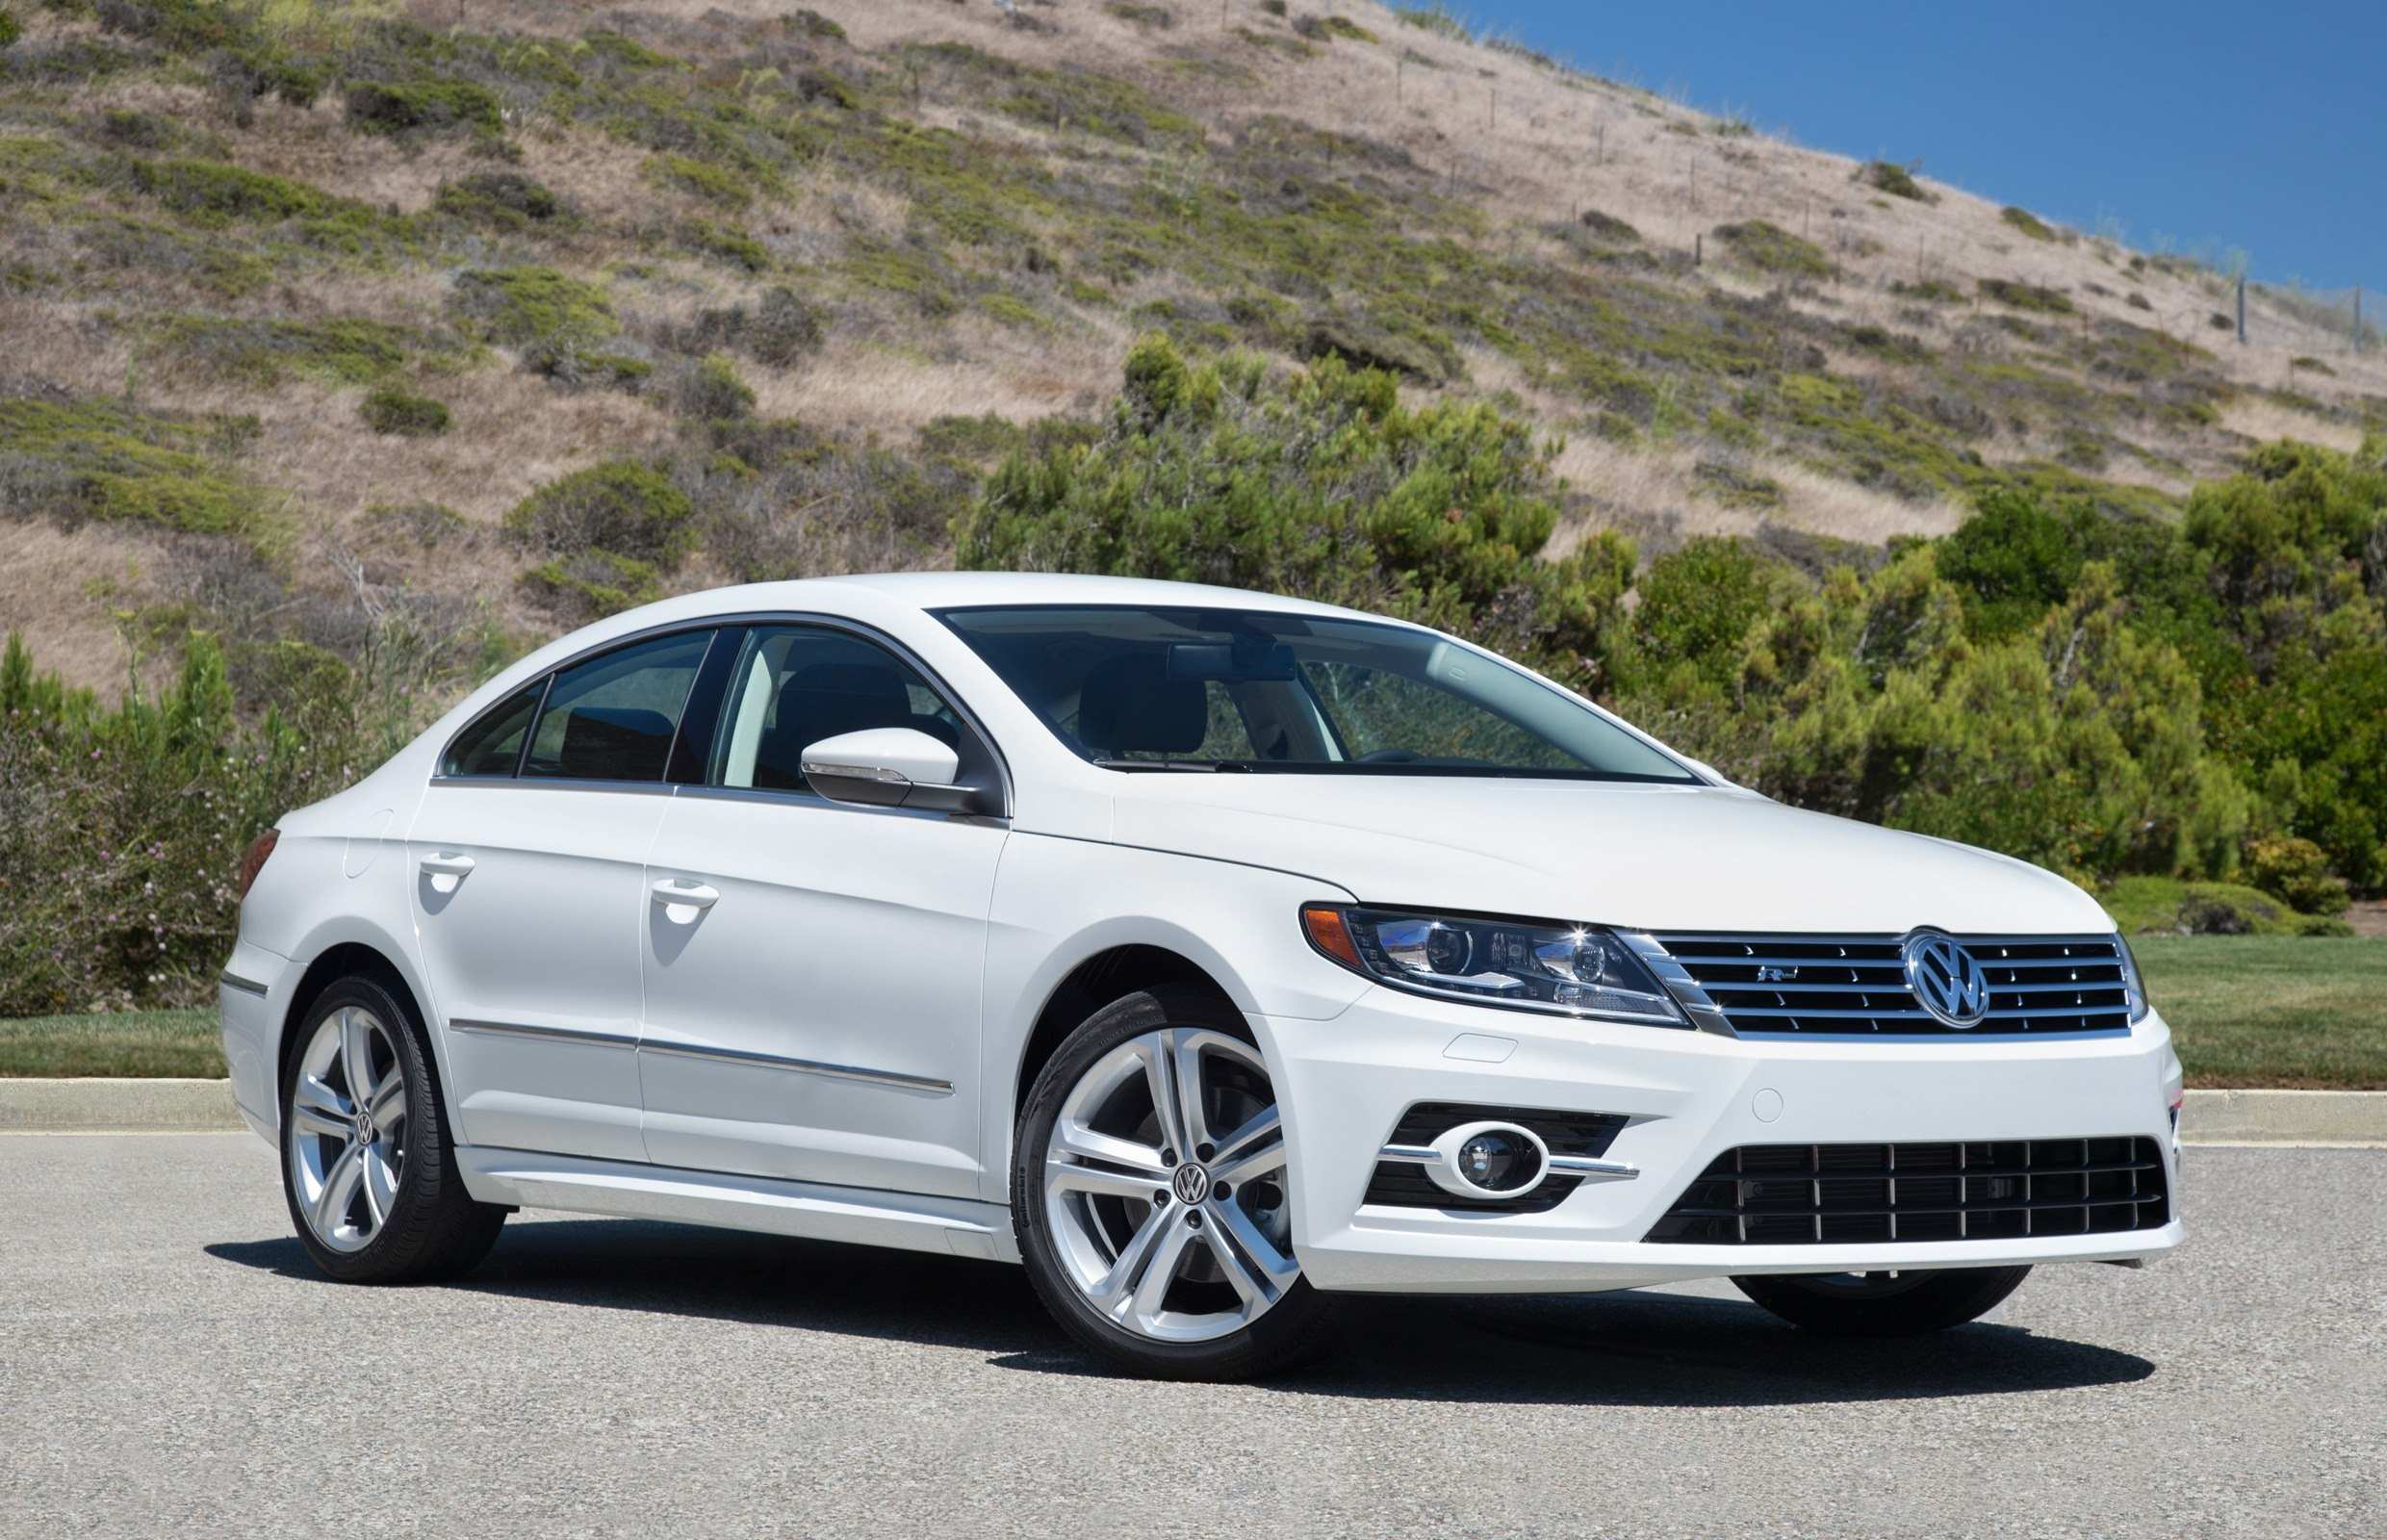 93 New Next Generation 2020 Vw Cc Release Date by Next Generation 2020 Vw Cc